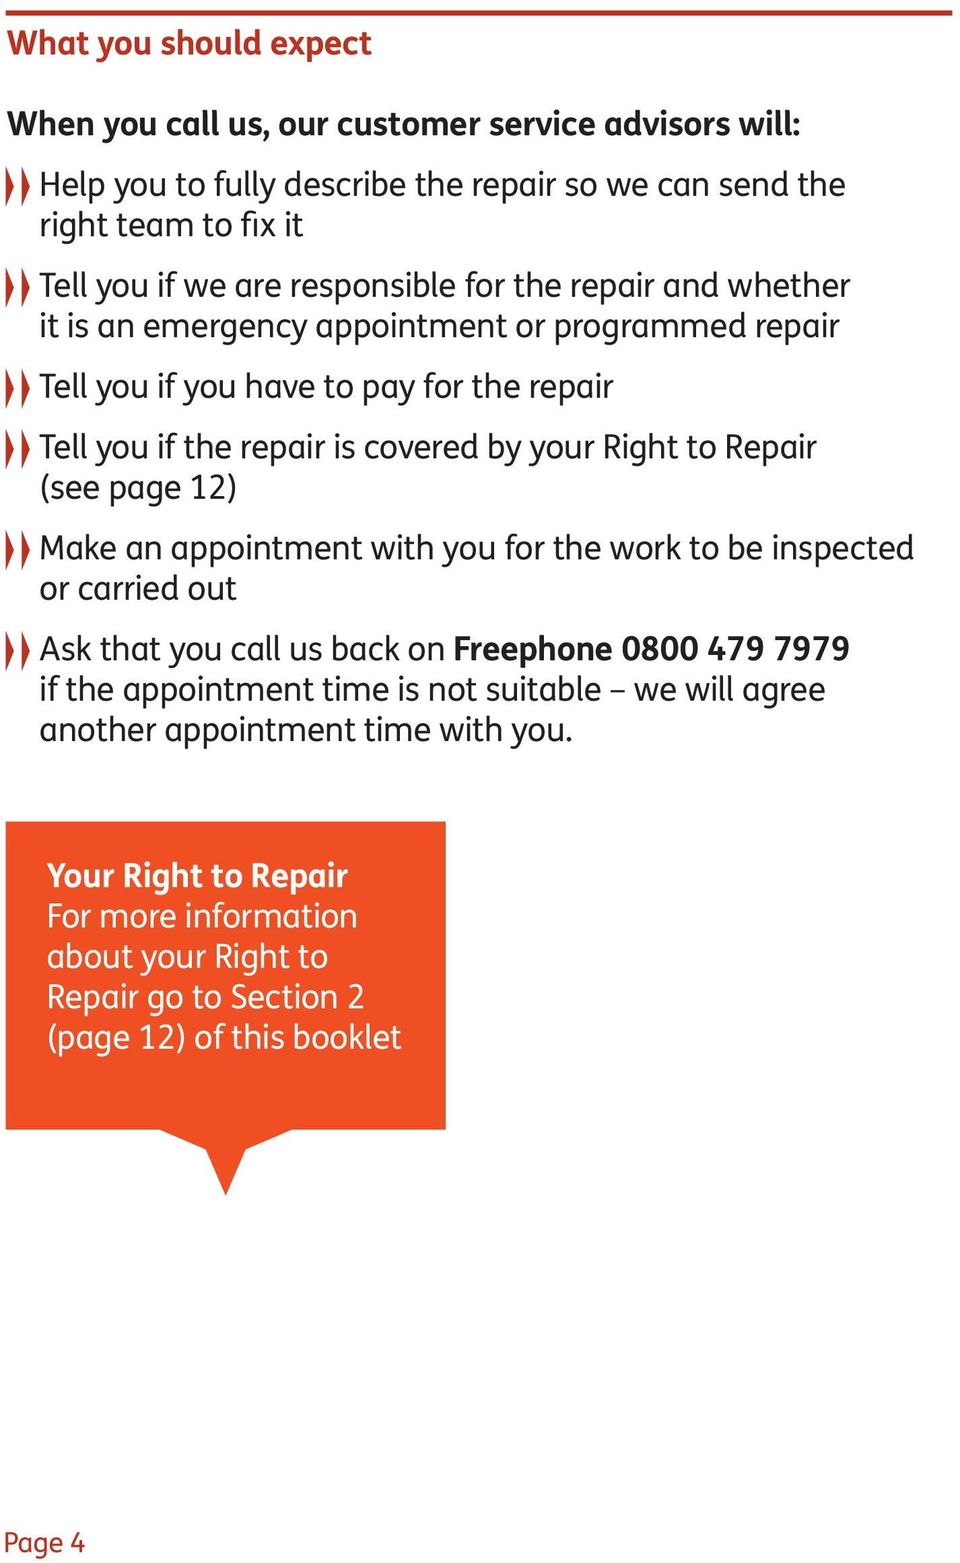 Right to Repair (see page 12) Make an appointment with you for the work to be inspected or carried out Ask that you call us back on Freephone 0800 479 7979 if the appointment